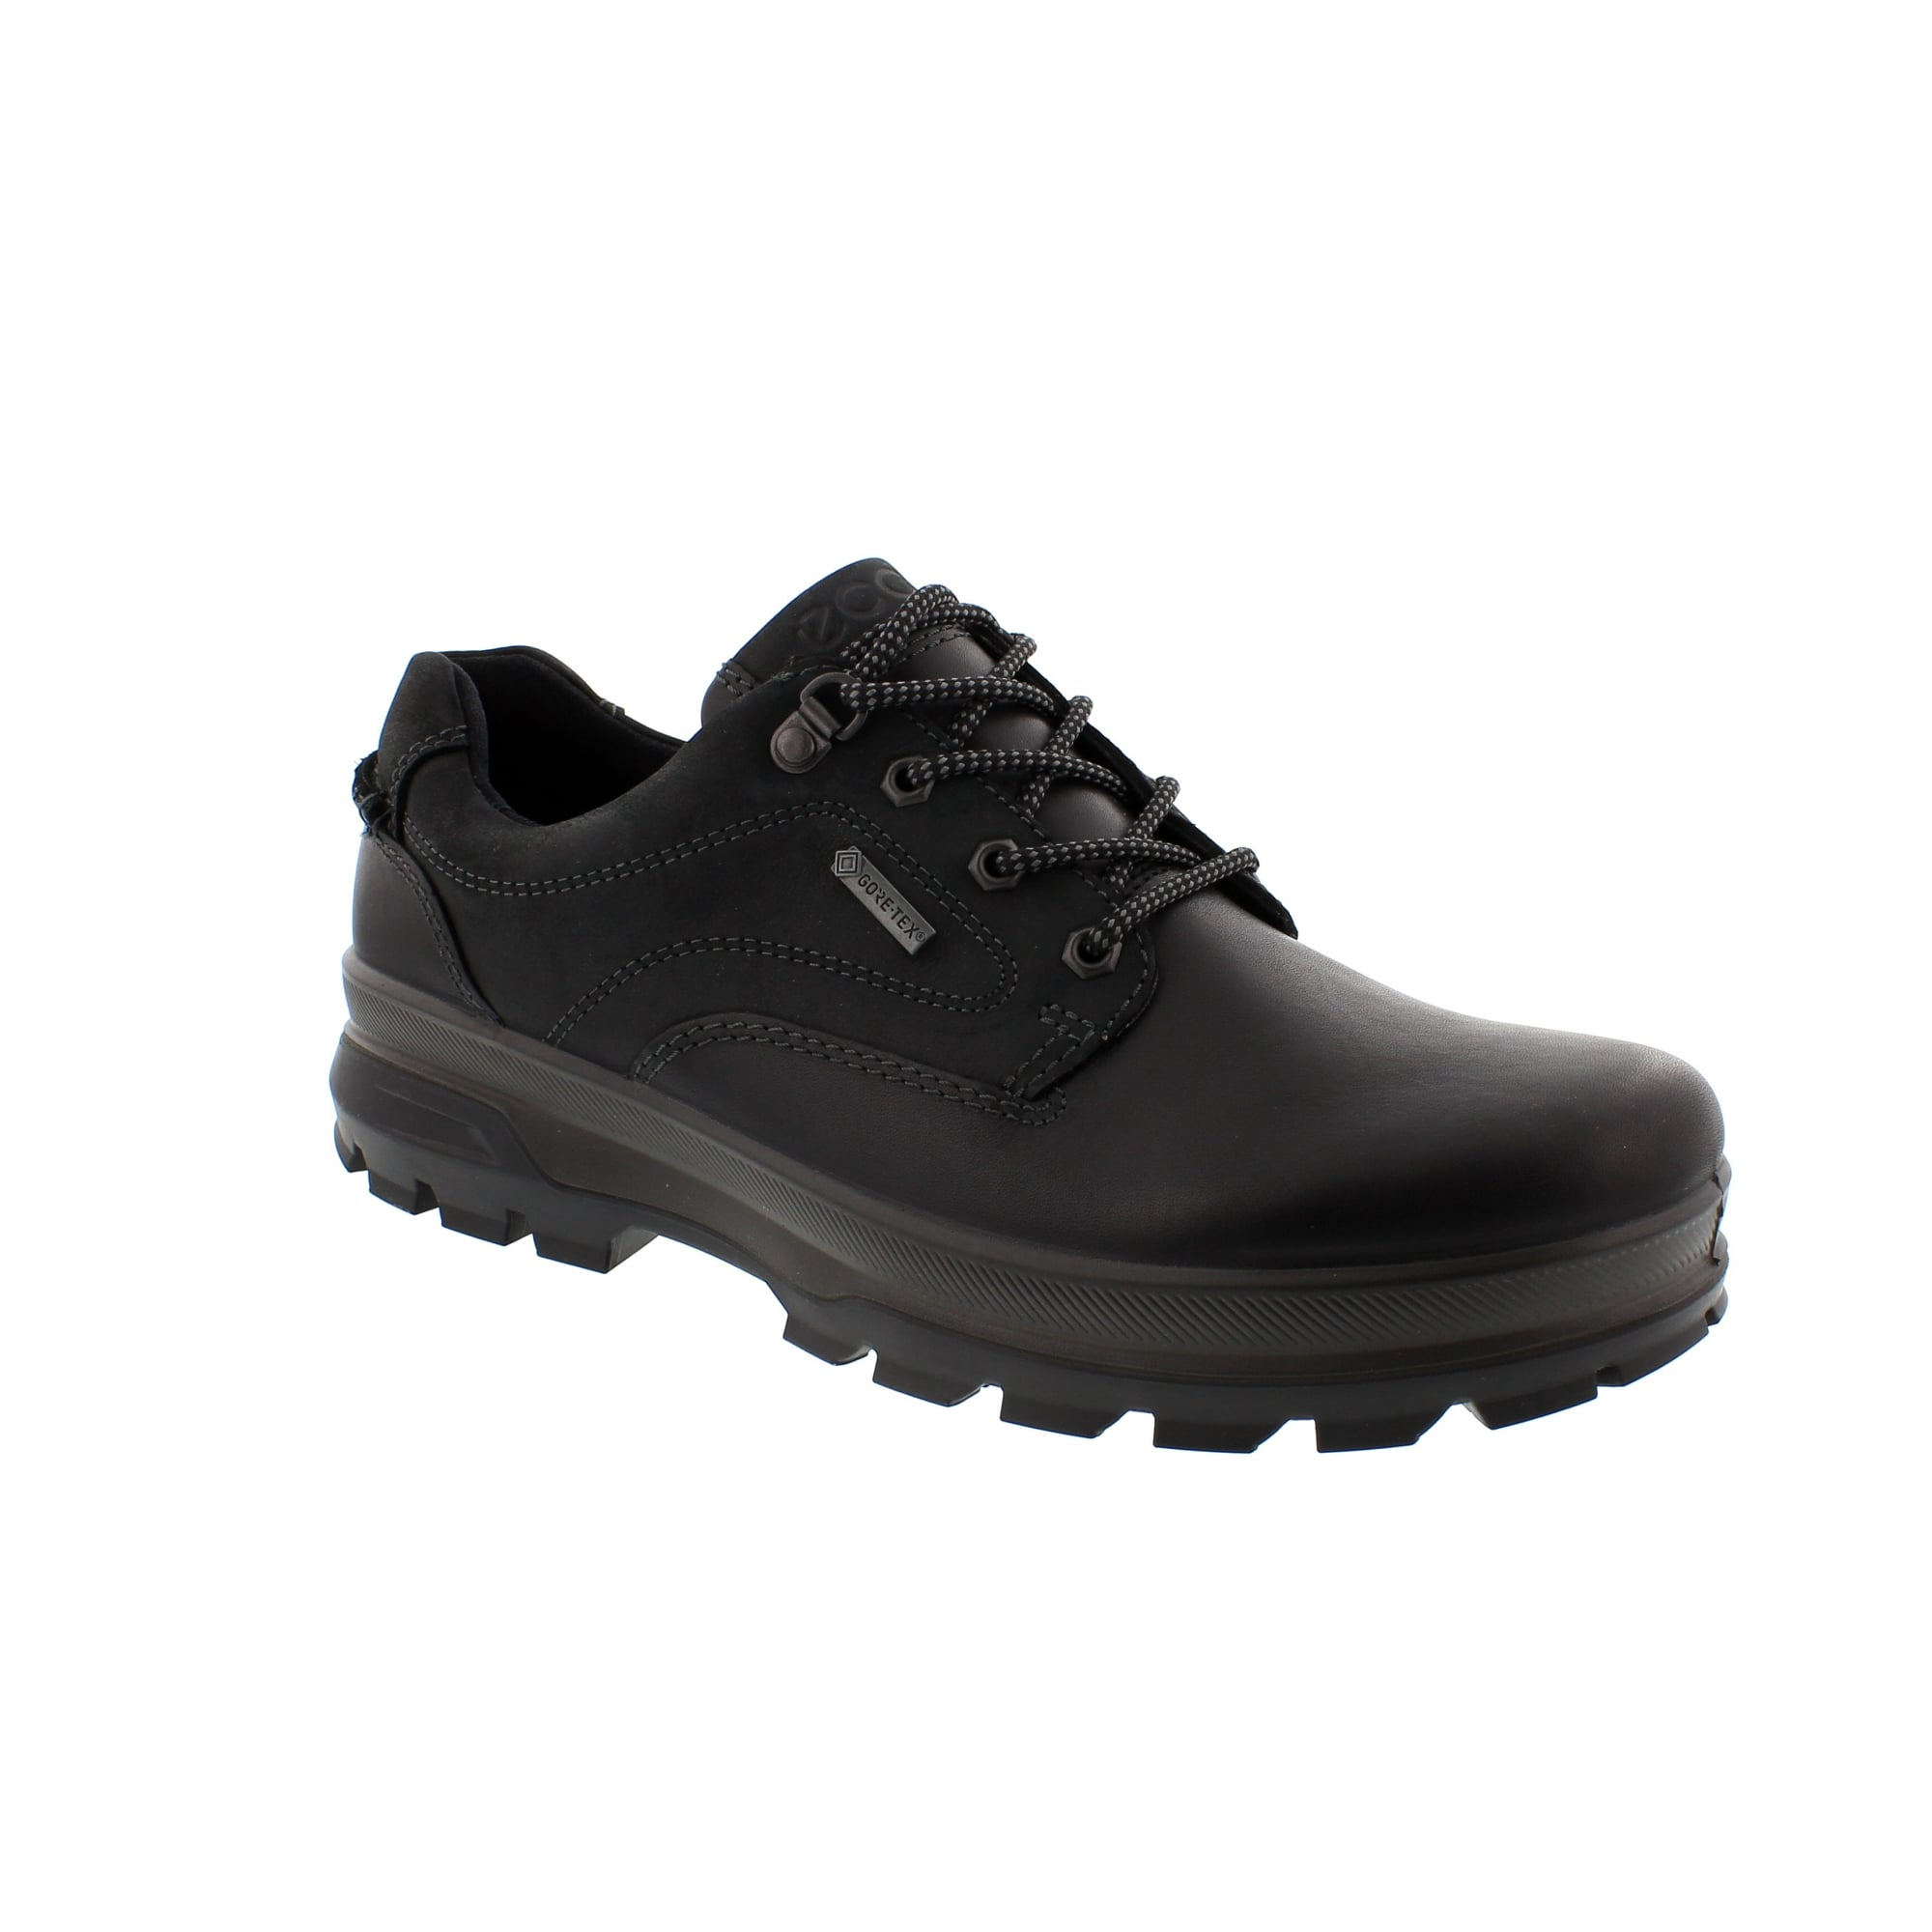 3a85cc0972 Ecco Rugged Track | 838034-51707 - Mens from Rogerson Shoes UK